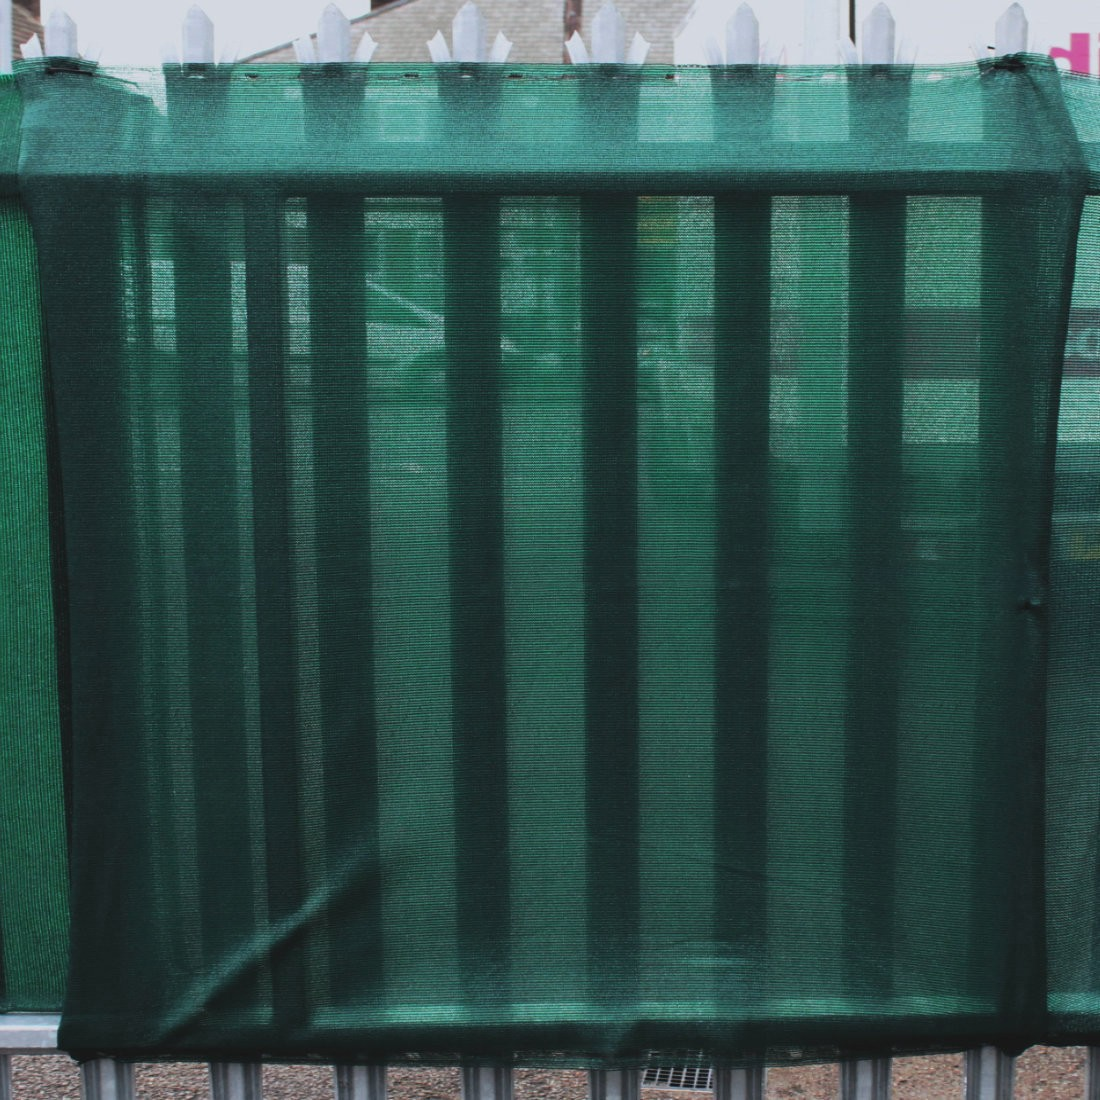 95% 'T' Shade Netting for Privacy - Green. 4ft, 6ft or 12ft High